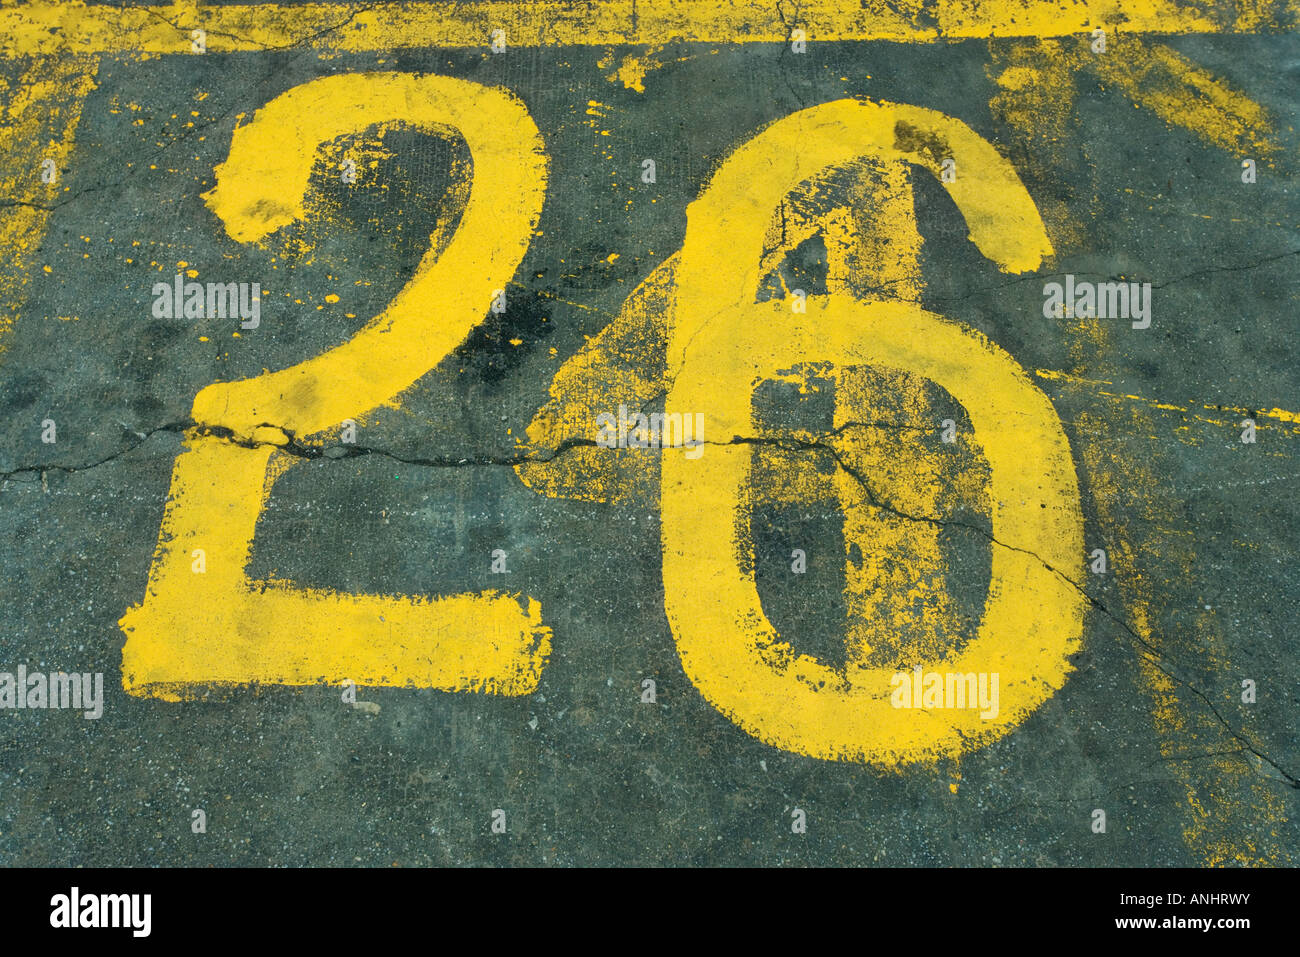 Number 26 painted on asphalt - Stock Image